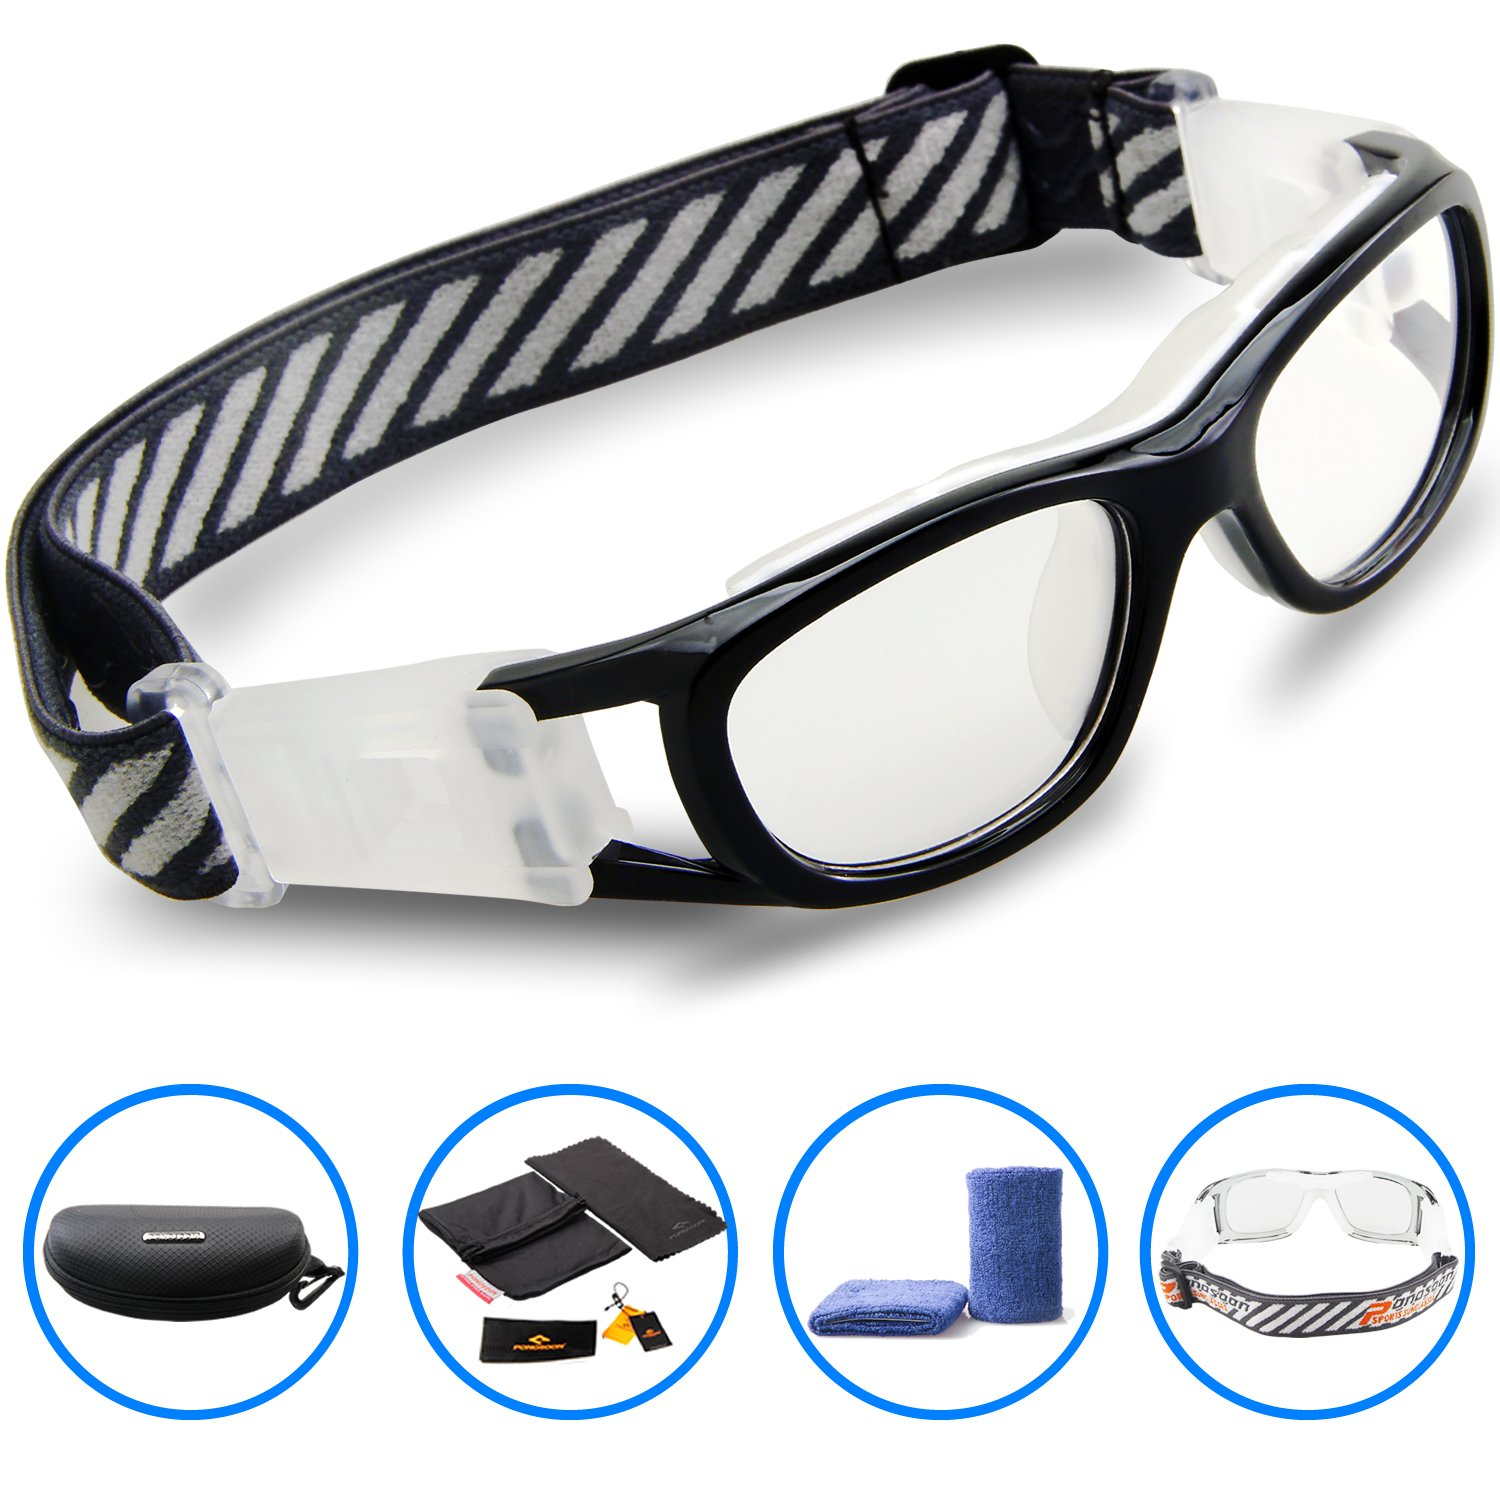 4462b431d9d Amazon.com   PONOSOON Sports Goggles Glasses for Kids for Basketball  Football Volleyball 1812(Black)   Sports   Outdoors